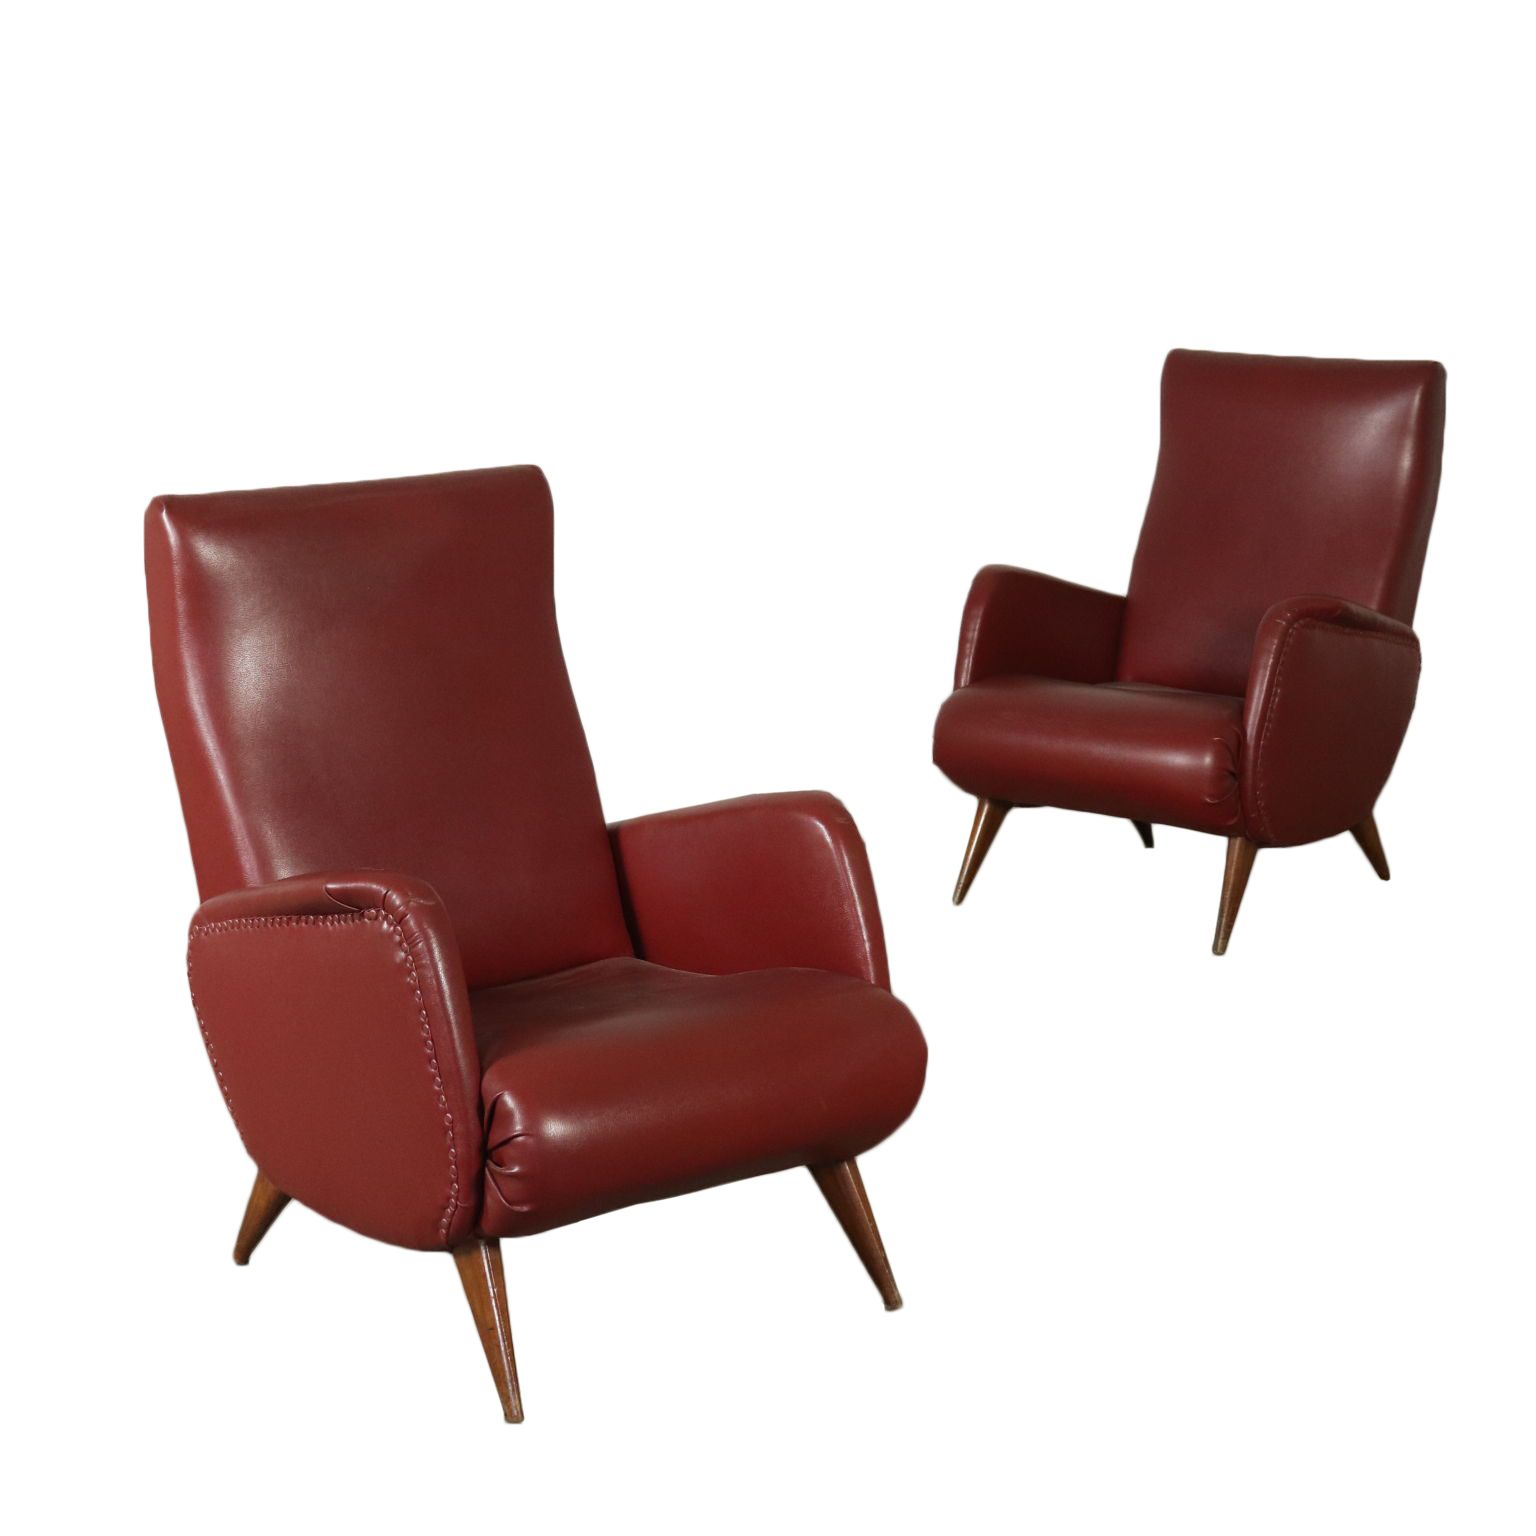 Vintage Pair Of Armchairs Foam Leatherette Vintage Manufactured In Italy 1950s A Pair Of Armchairs Foam Padding Fauteuil Vintage Fauteuil Fauteuil Année 50